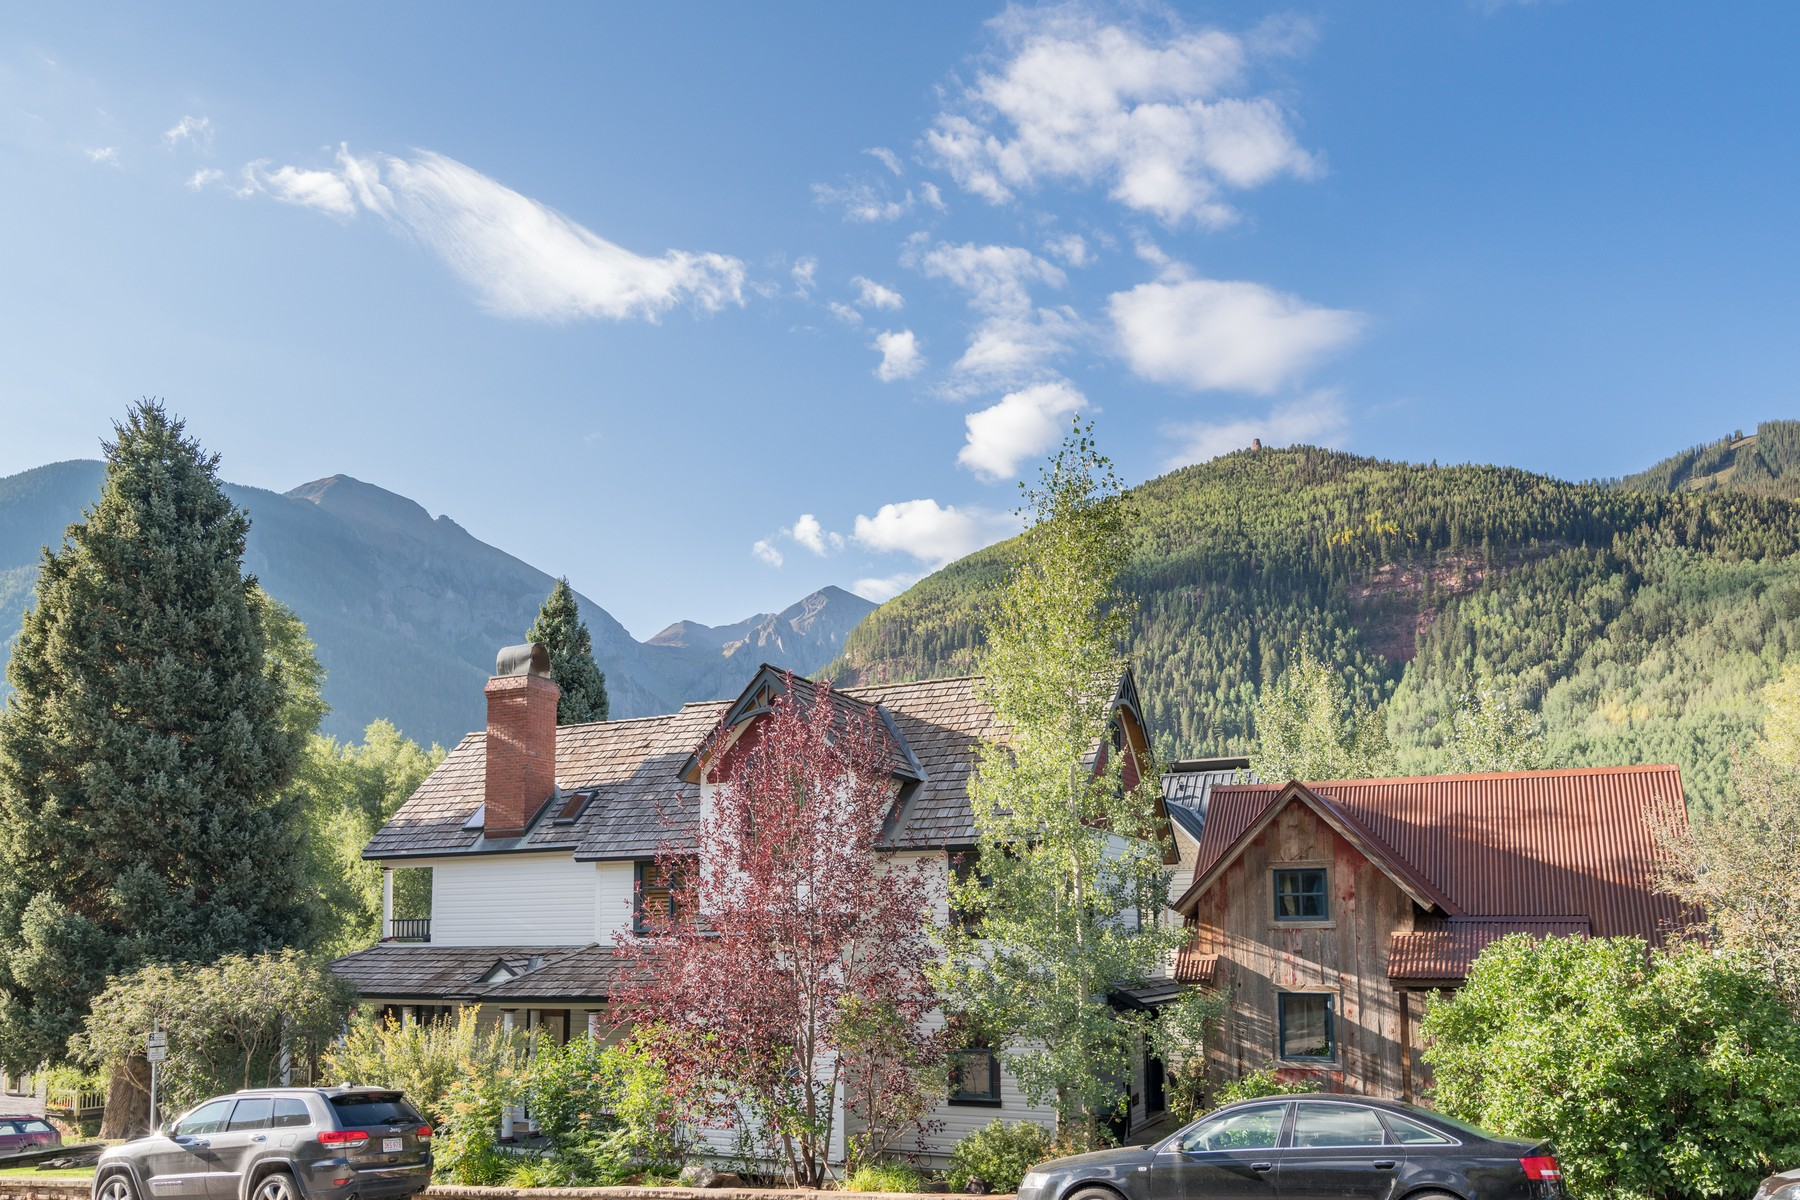 Casa Unifamiliar por un Venta en 239 North Fir Street 239 North Fir Street Telluride, Colorado 81435 Estados Unidos